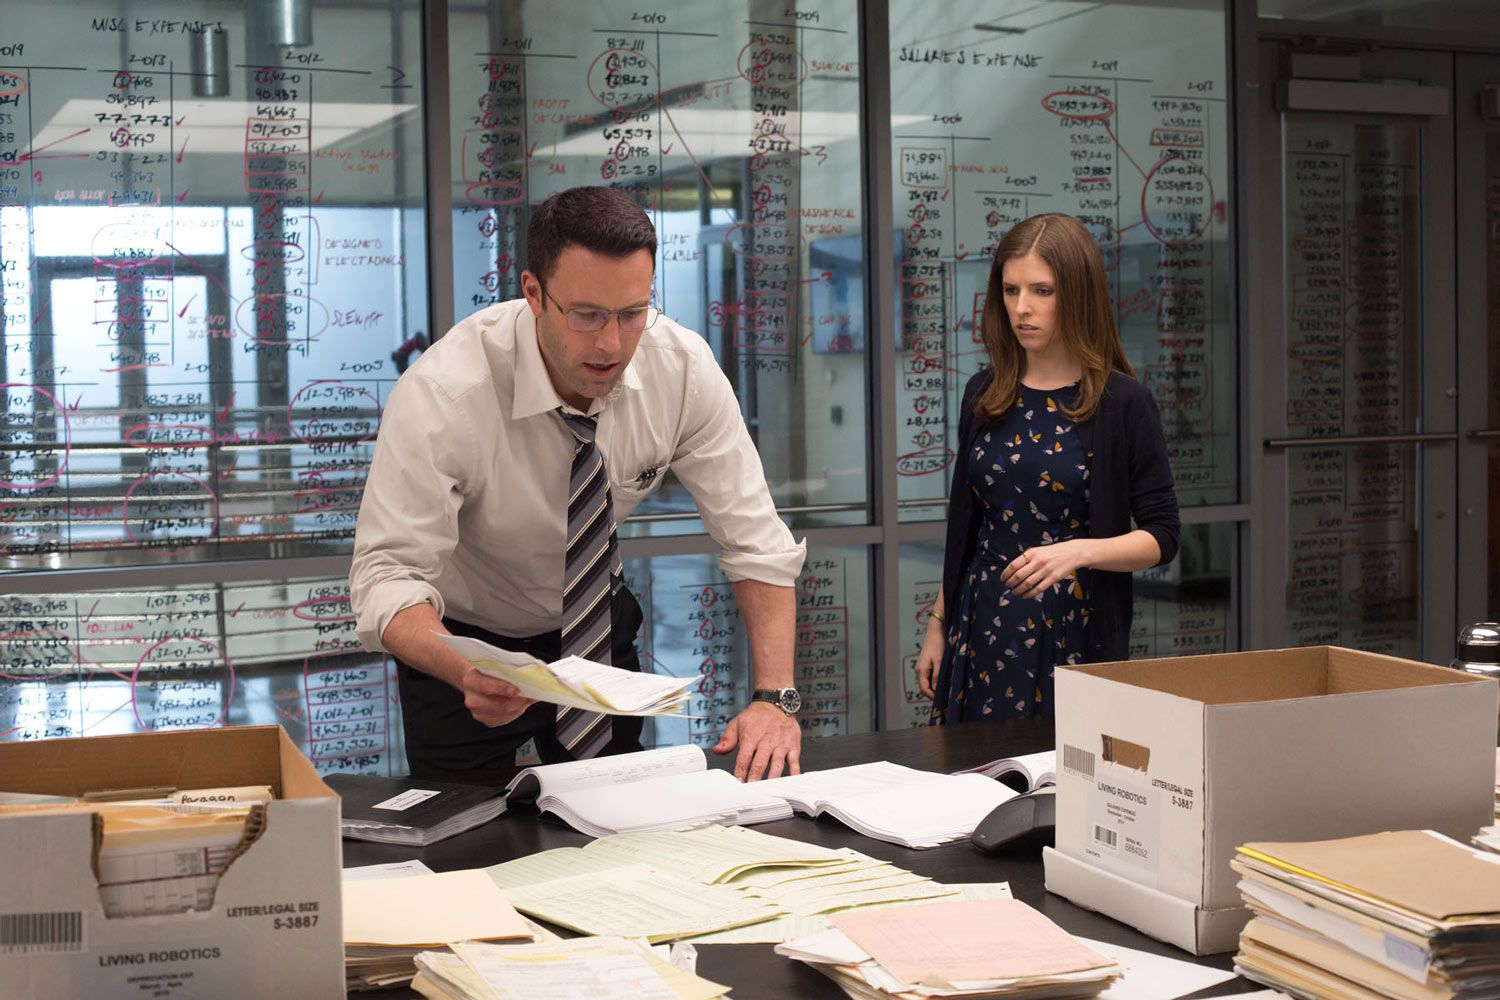 MOVIES: The Accountant - Review | The accountant movie ...